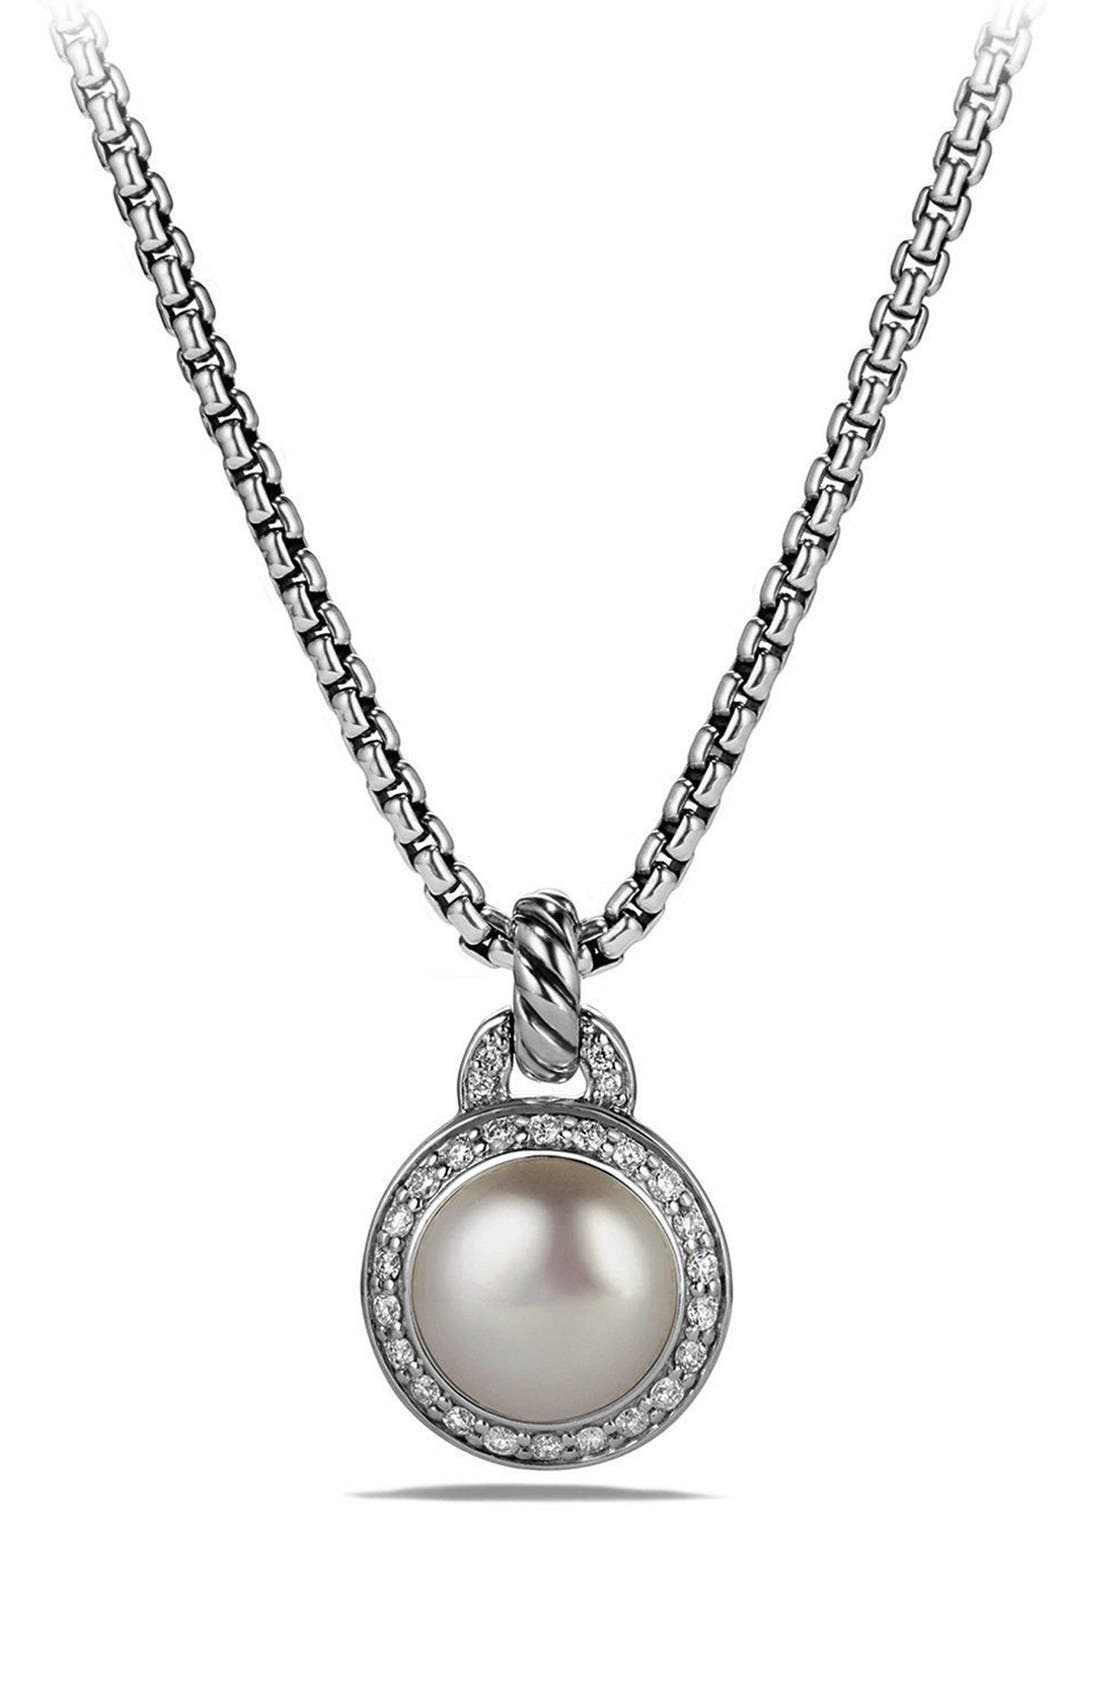 'Cerise' Petite Cerise Pendant Necklace with Pearl and Diamonds,                             Main thumbnail 1, color,                             SILVER/ PEARL